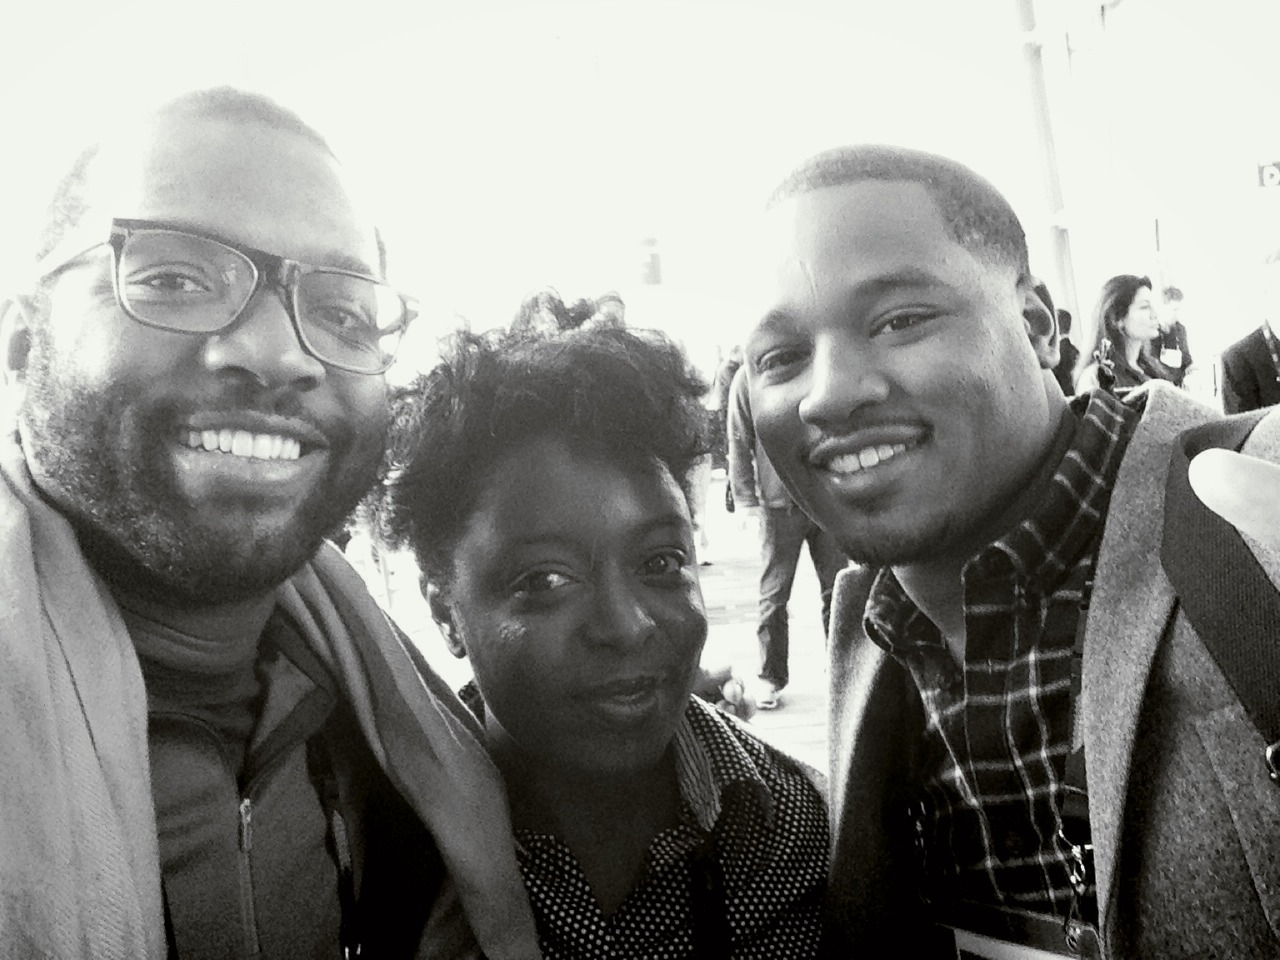 Me + Kimberly Bryant (Black Girls Code) + Ryan Coogler (Fruitvale Station) at TED 2014 - The Next Chapter – View on  Path .